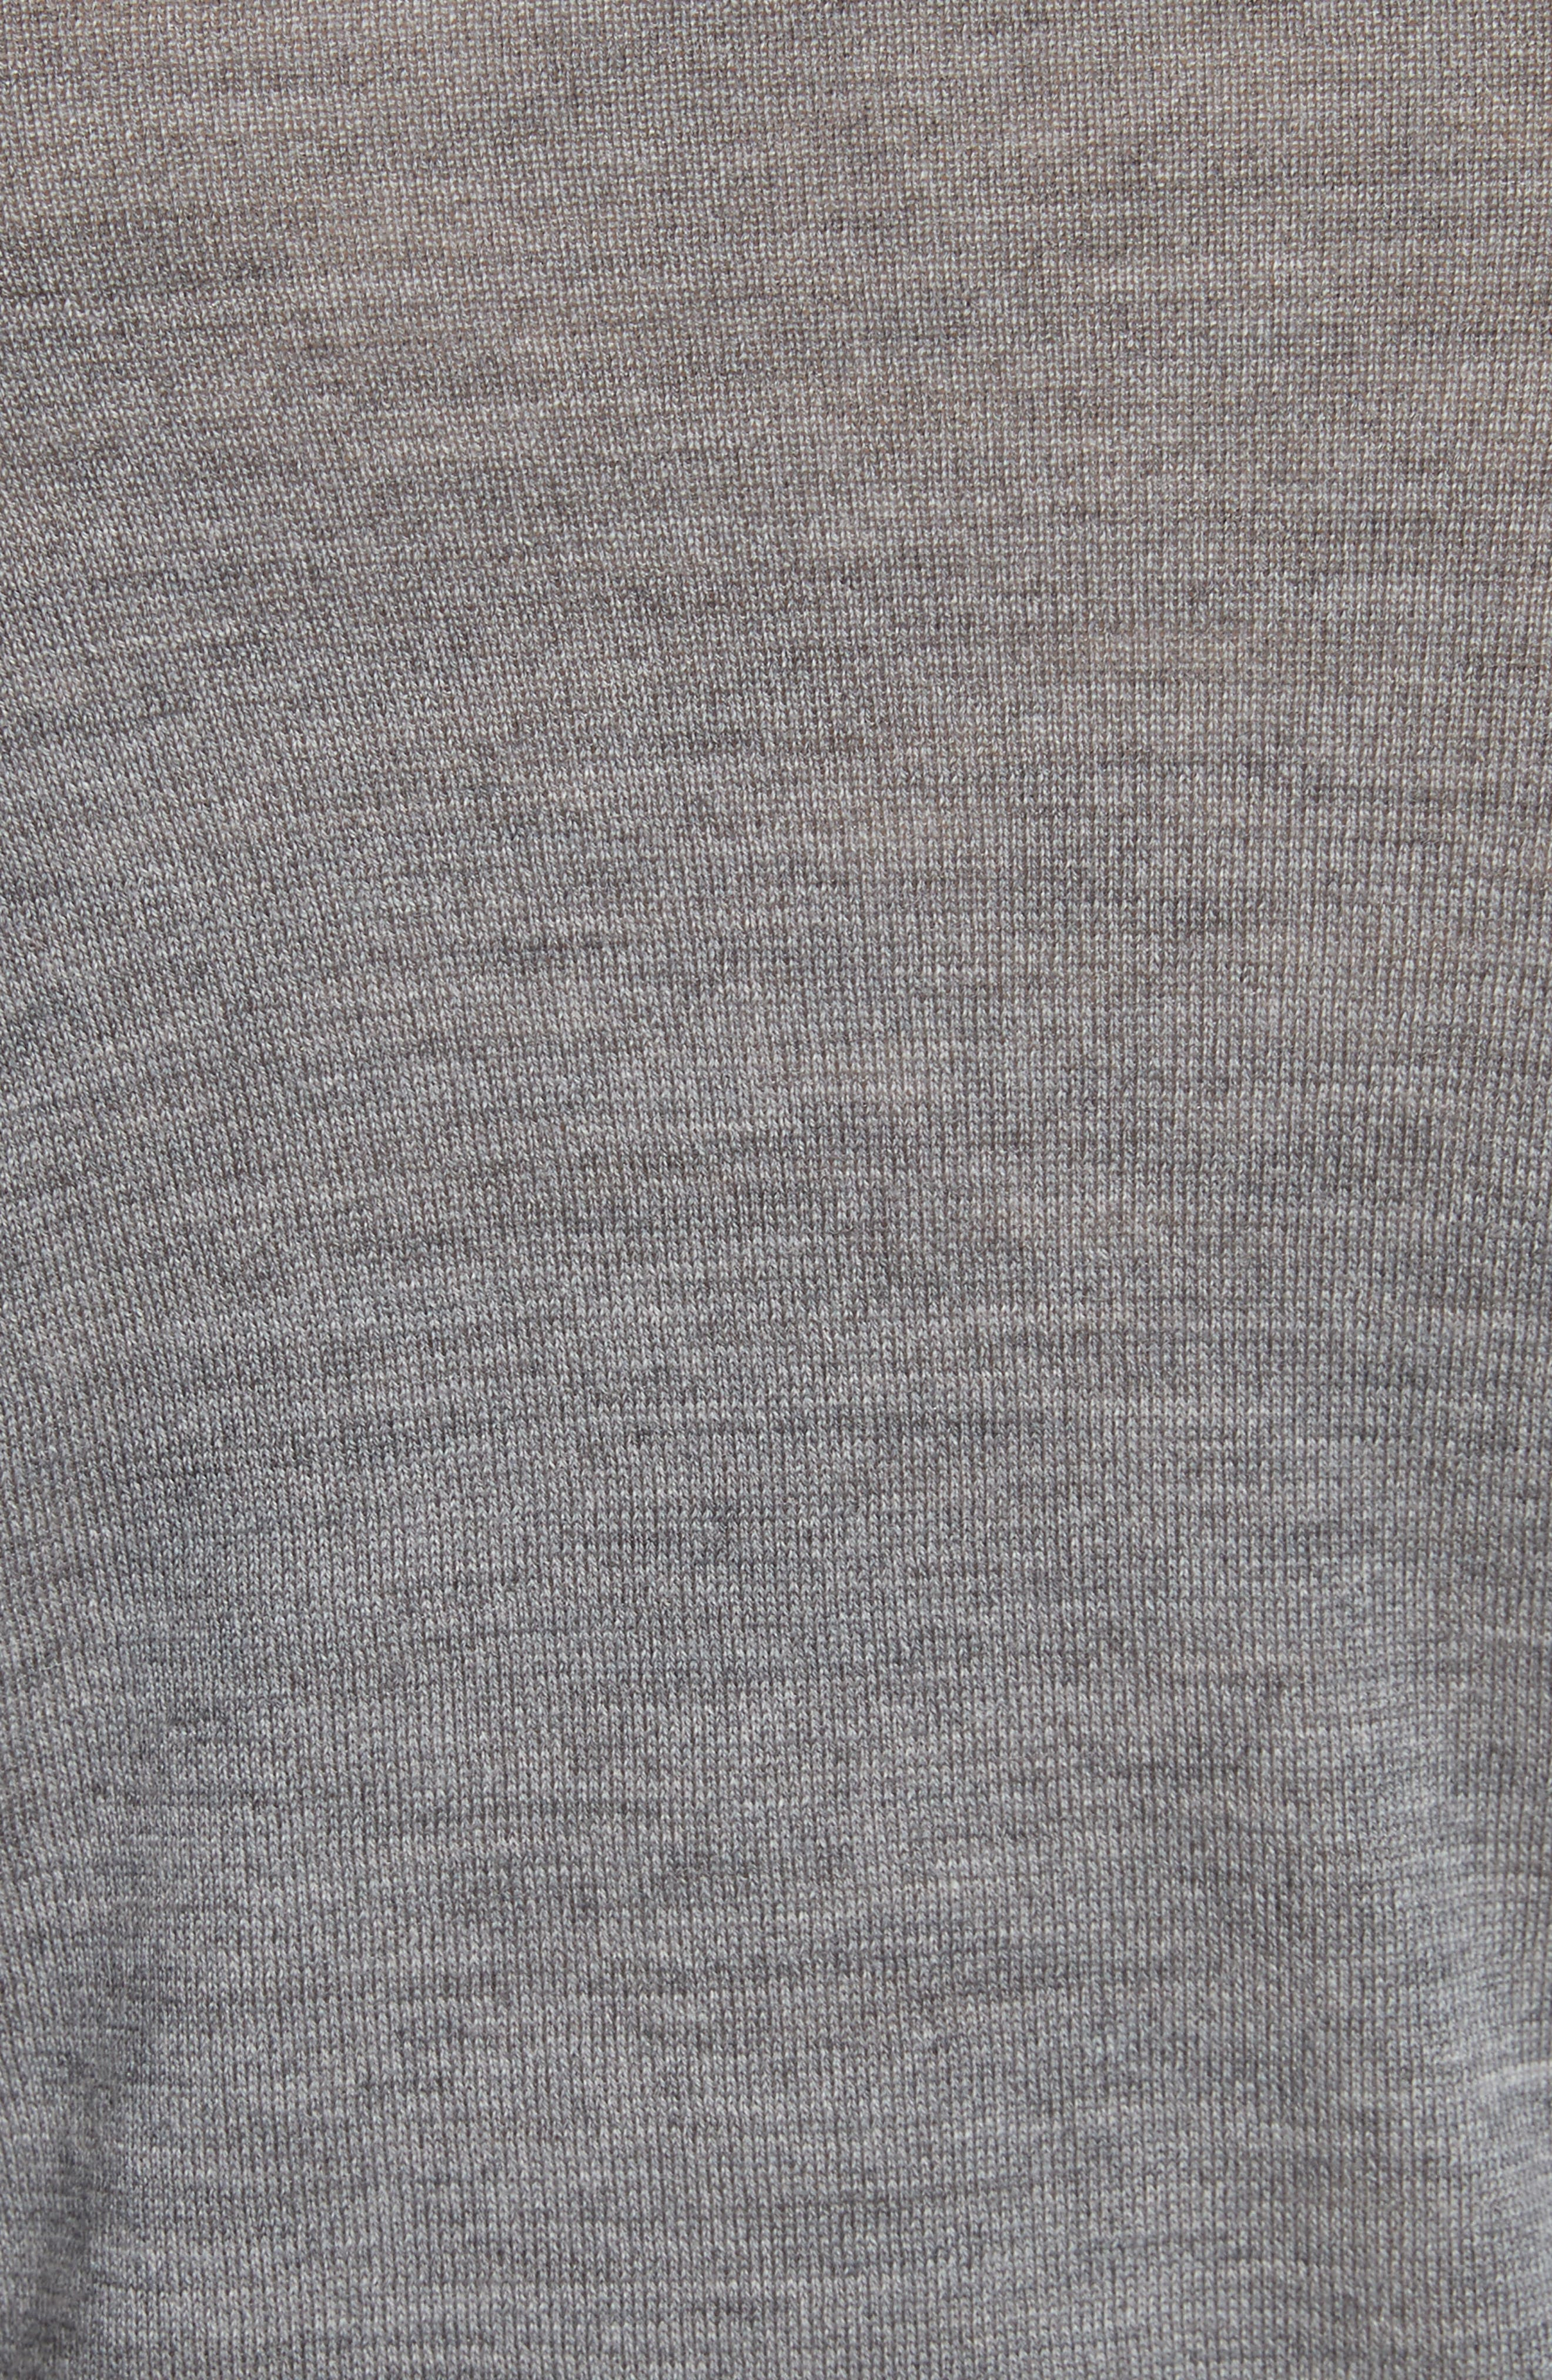 Wash & Go Cold Shoulder Merino Wool Sweater,                             Alternate thumbnail 5, color,                             Heather Grey